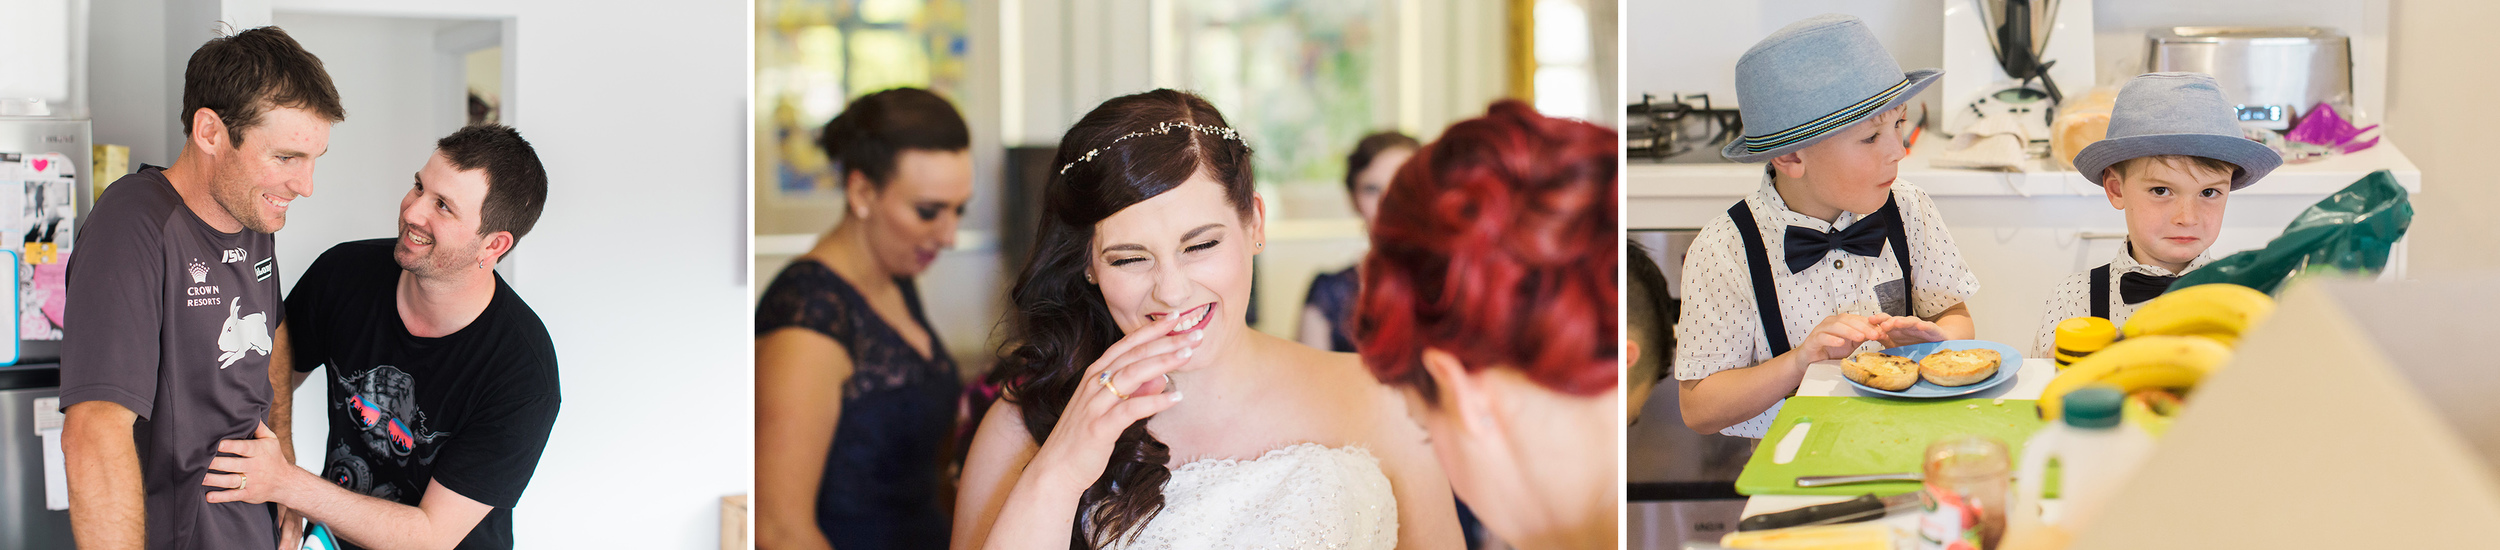 Wedding preparation photos - get used to your photographer.jpg